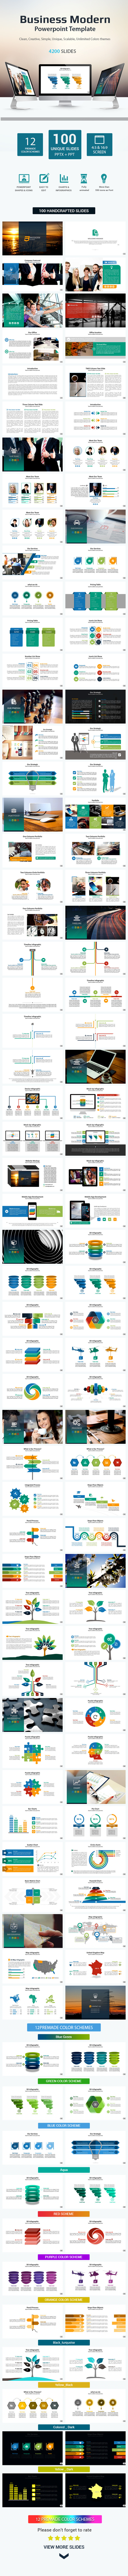 GraphicRiver Business Modern Presentation Template 10865858